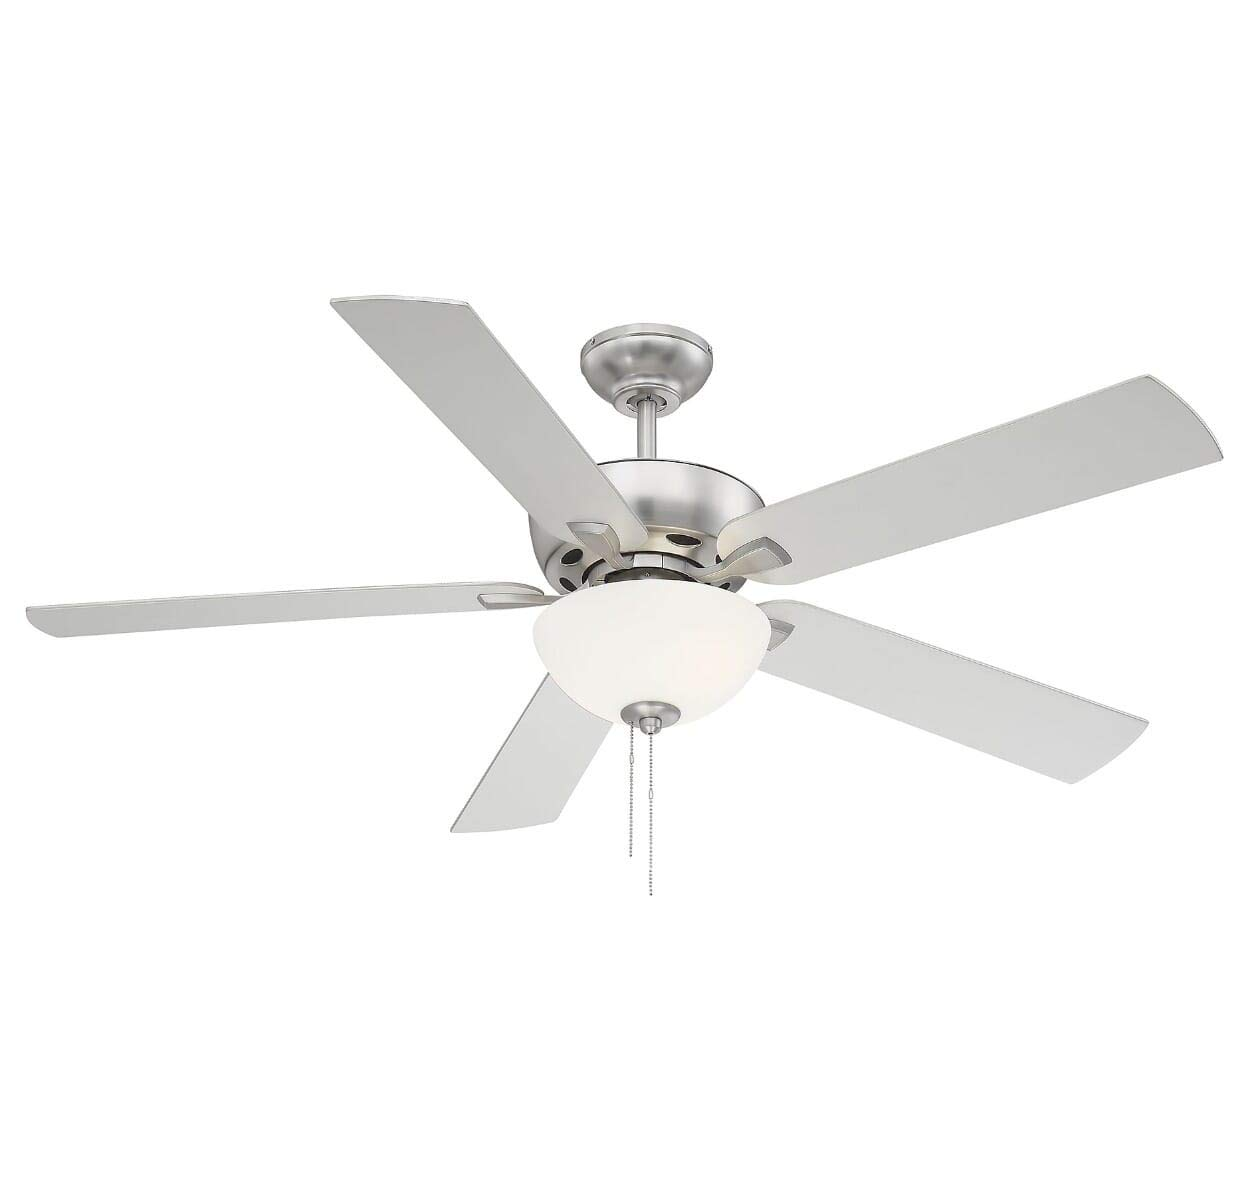 Trade Winds Lighting TW2007BN Berkeley Lake 52 Contractor Grade Ceiling Fan with LED Light Kit in Brushed Nickel